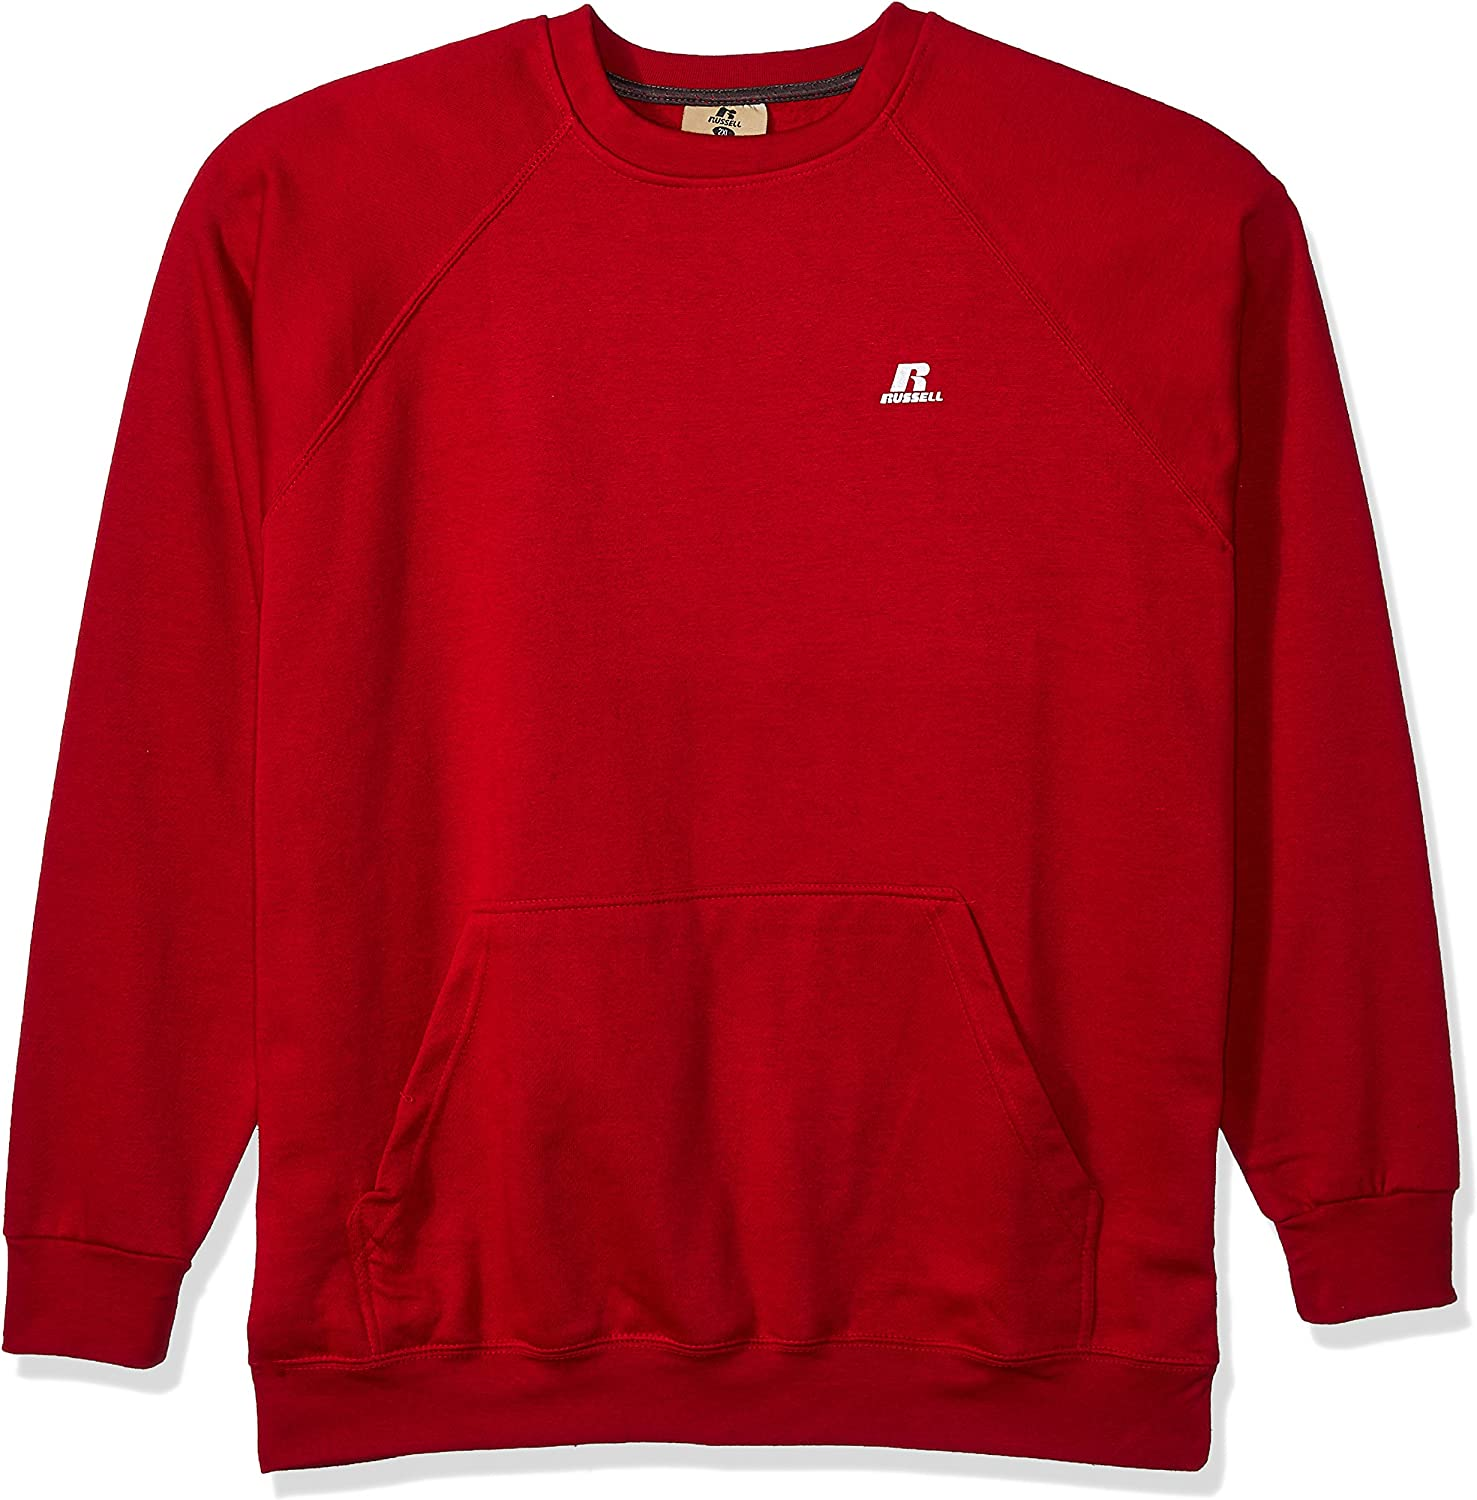 Russell Athletic Men's Big and Tall Fleece Pull Over with Pouch Pkt W/Lc R